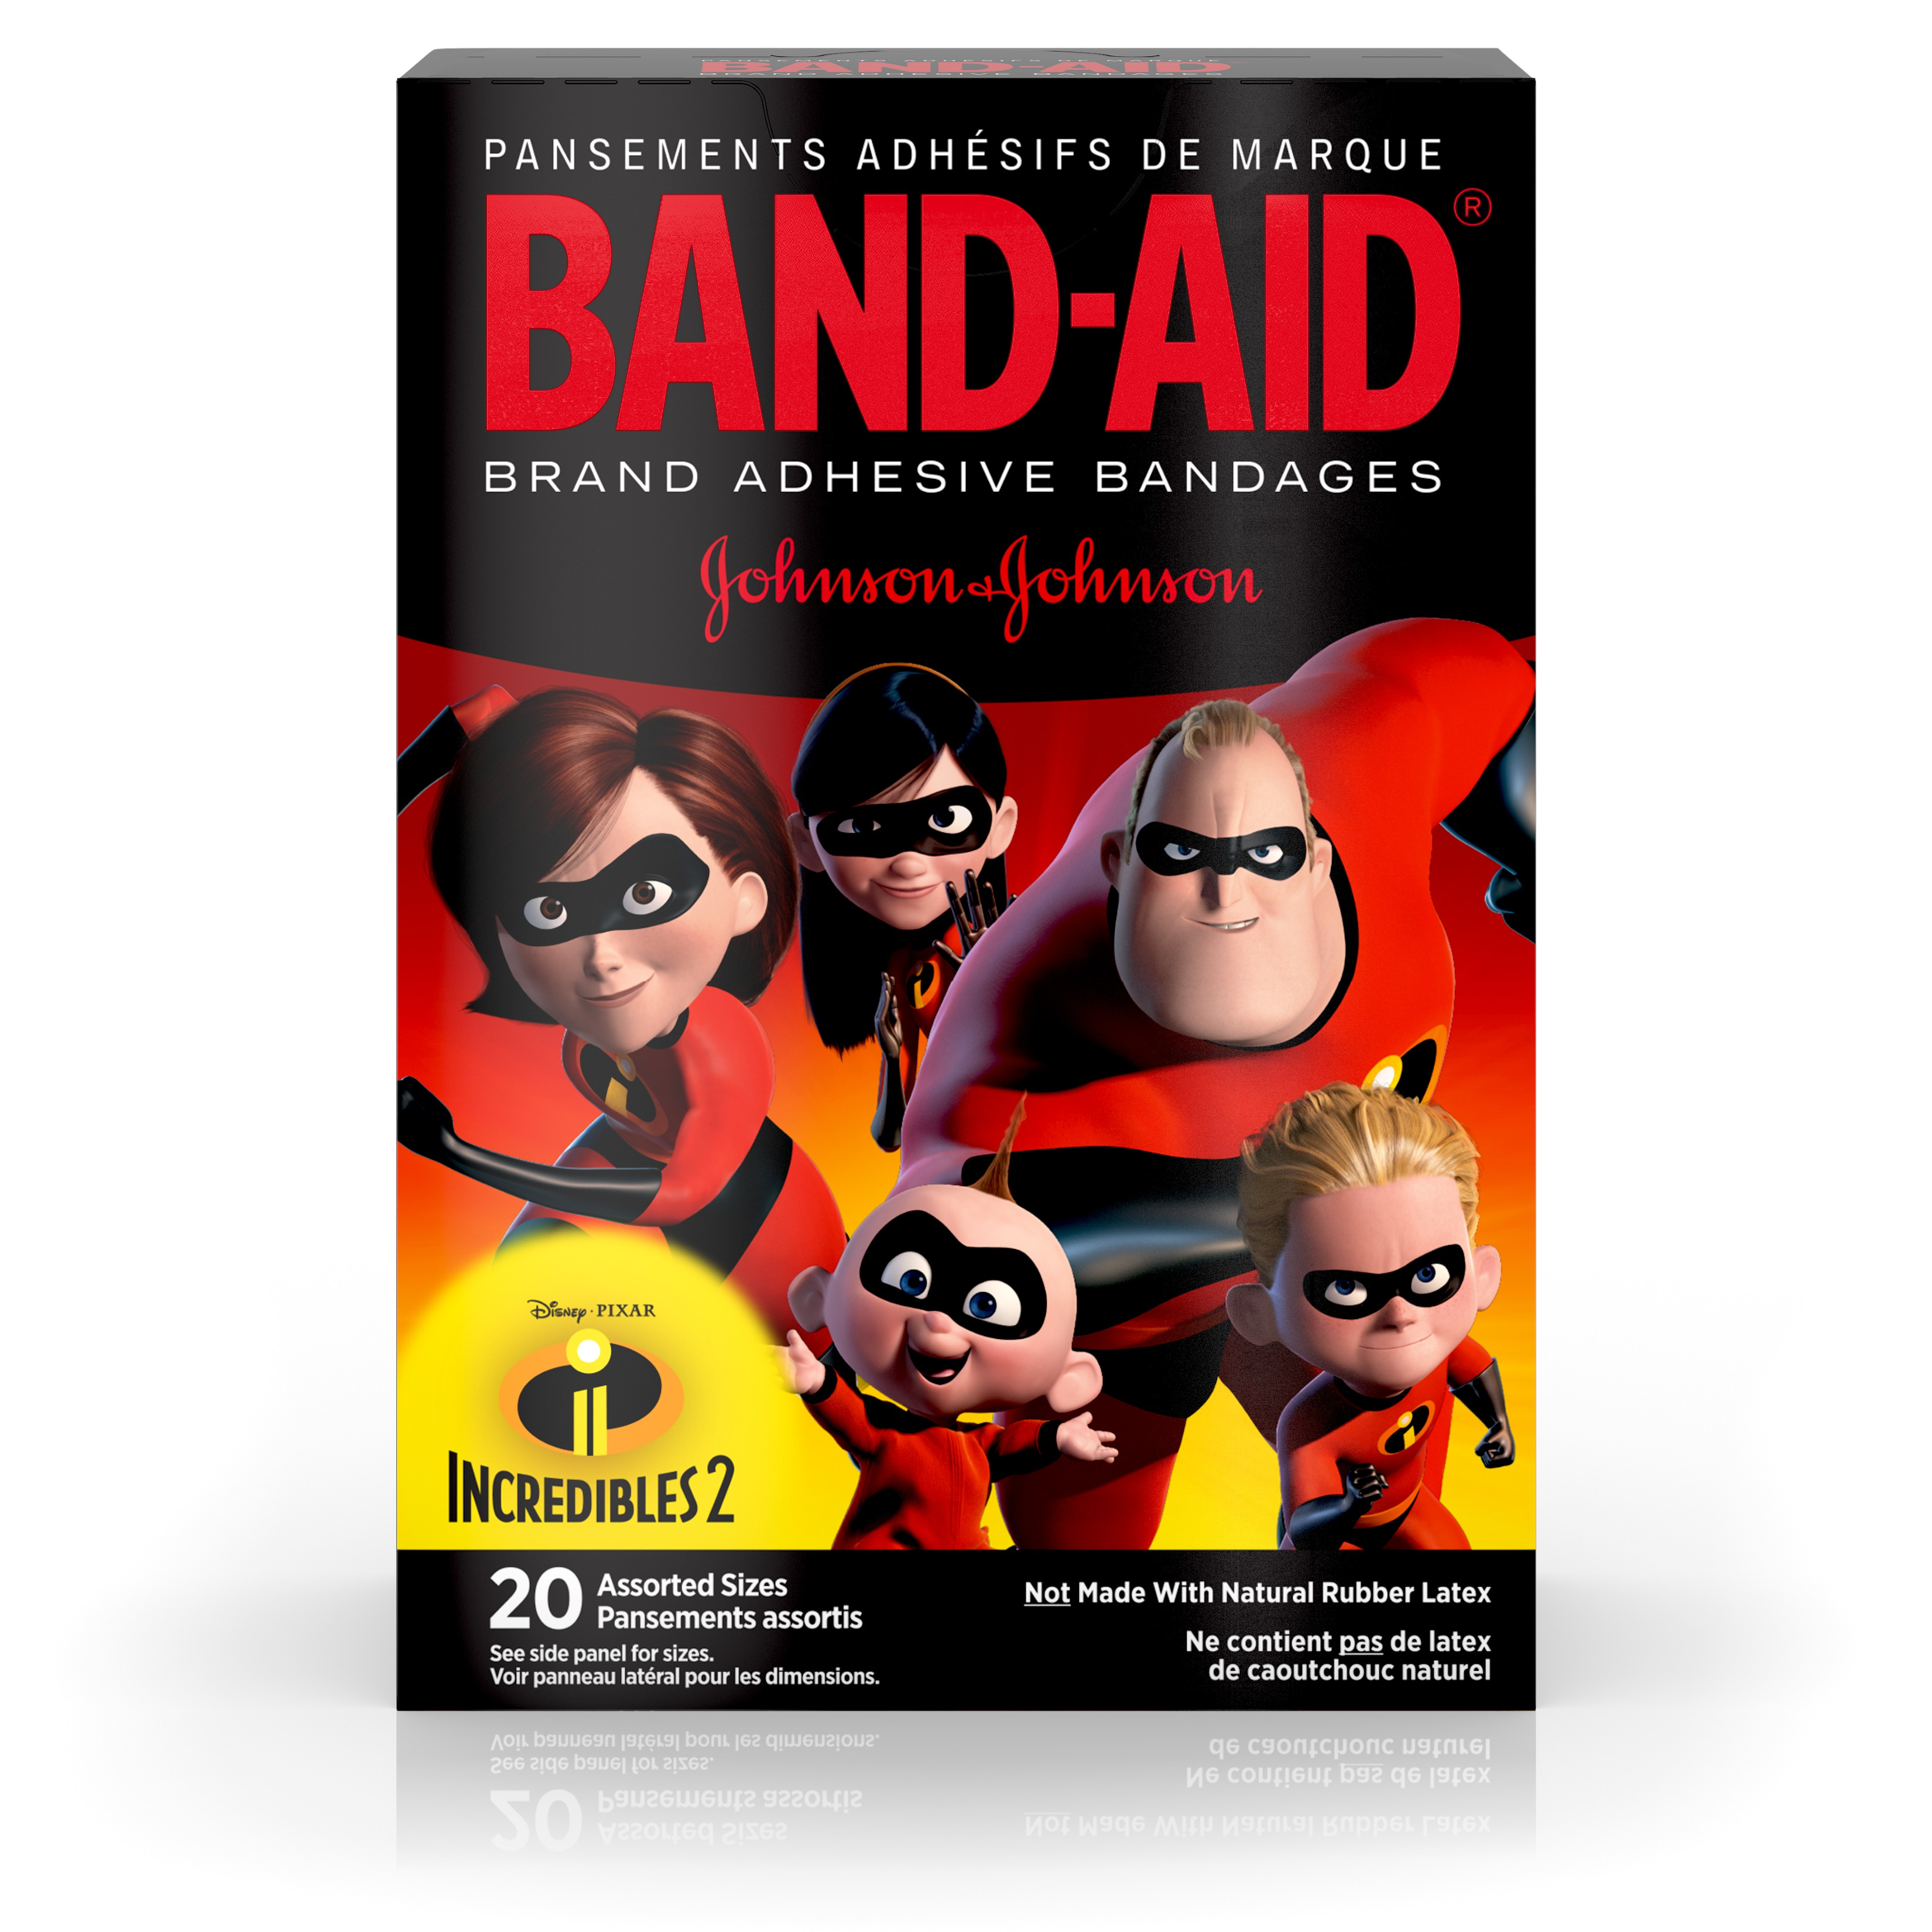 Band-Aid Brand Adhesive Bandages, Incredibles 2, Assorted Sizes 20 ct